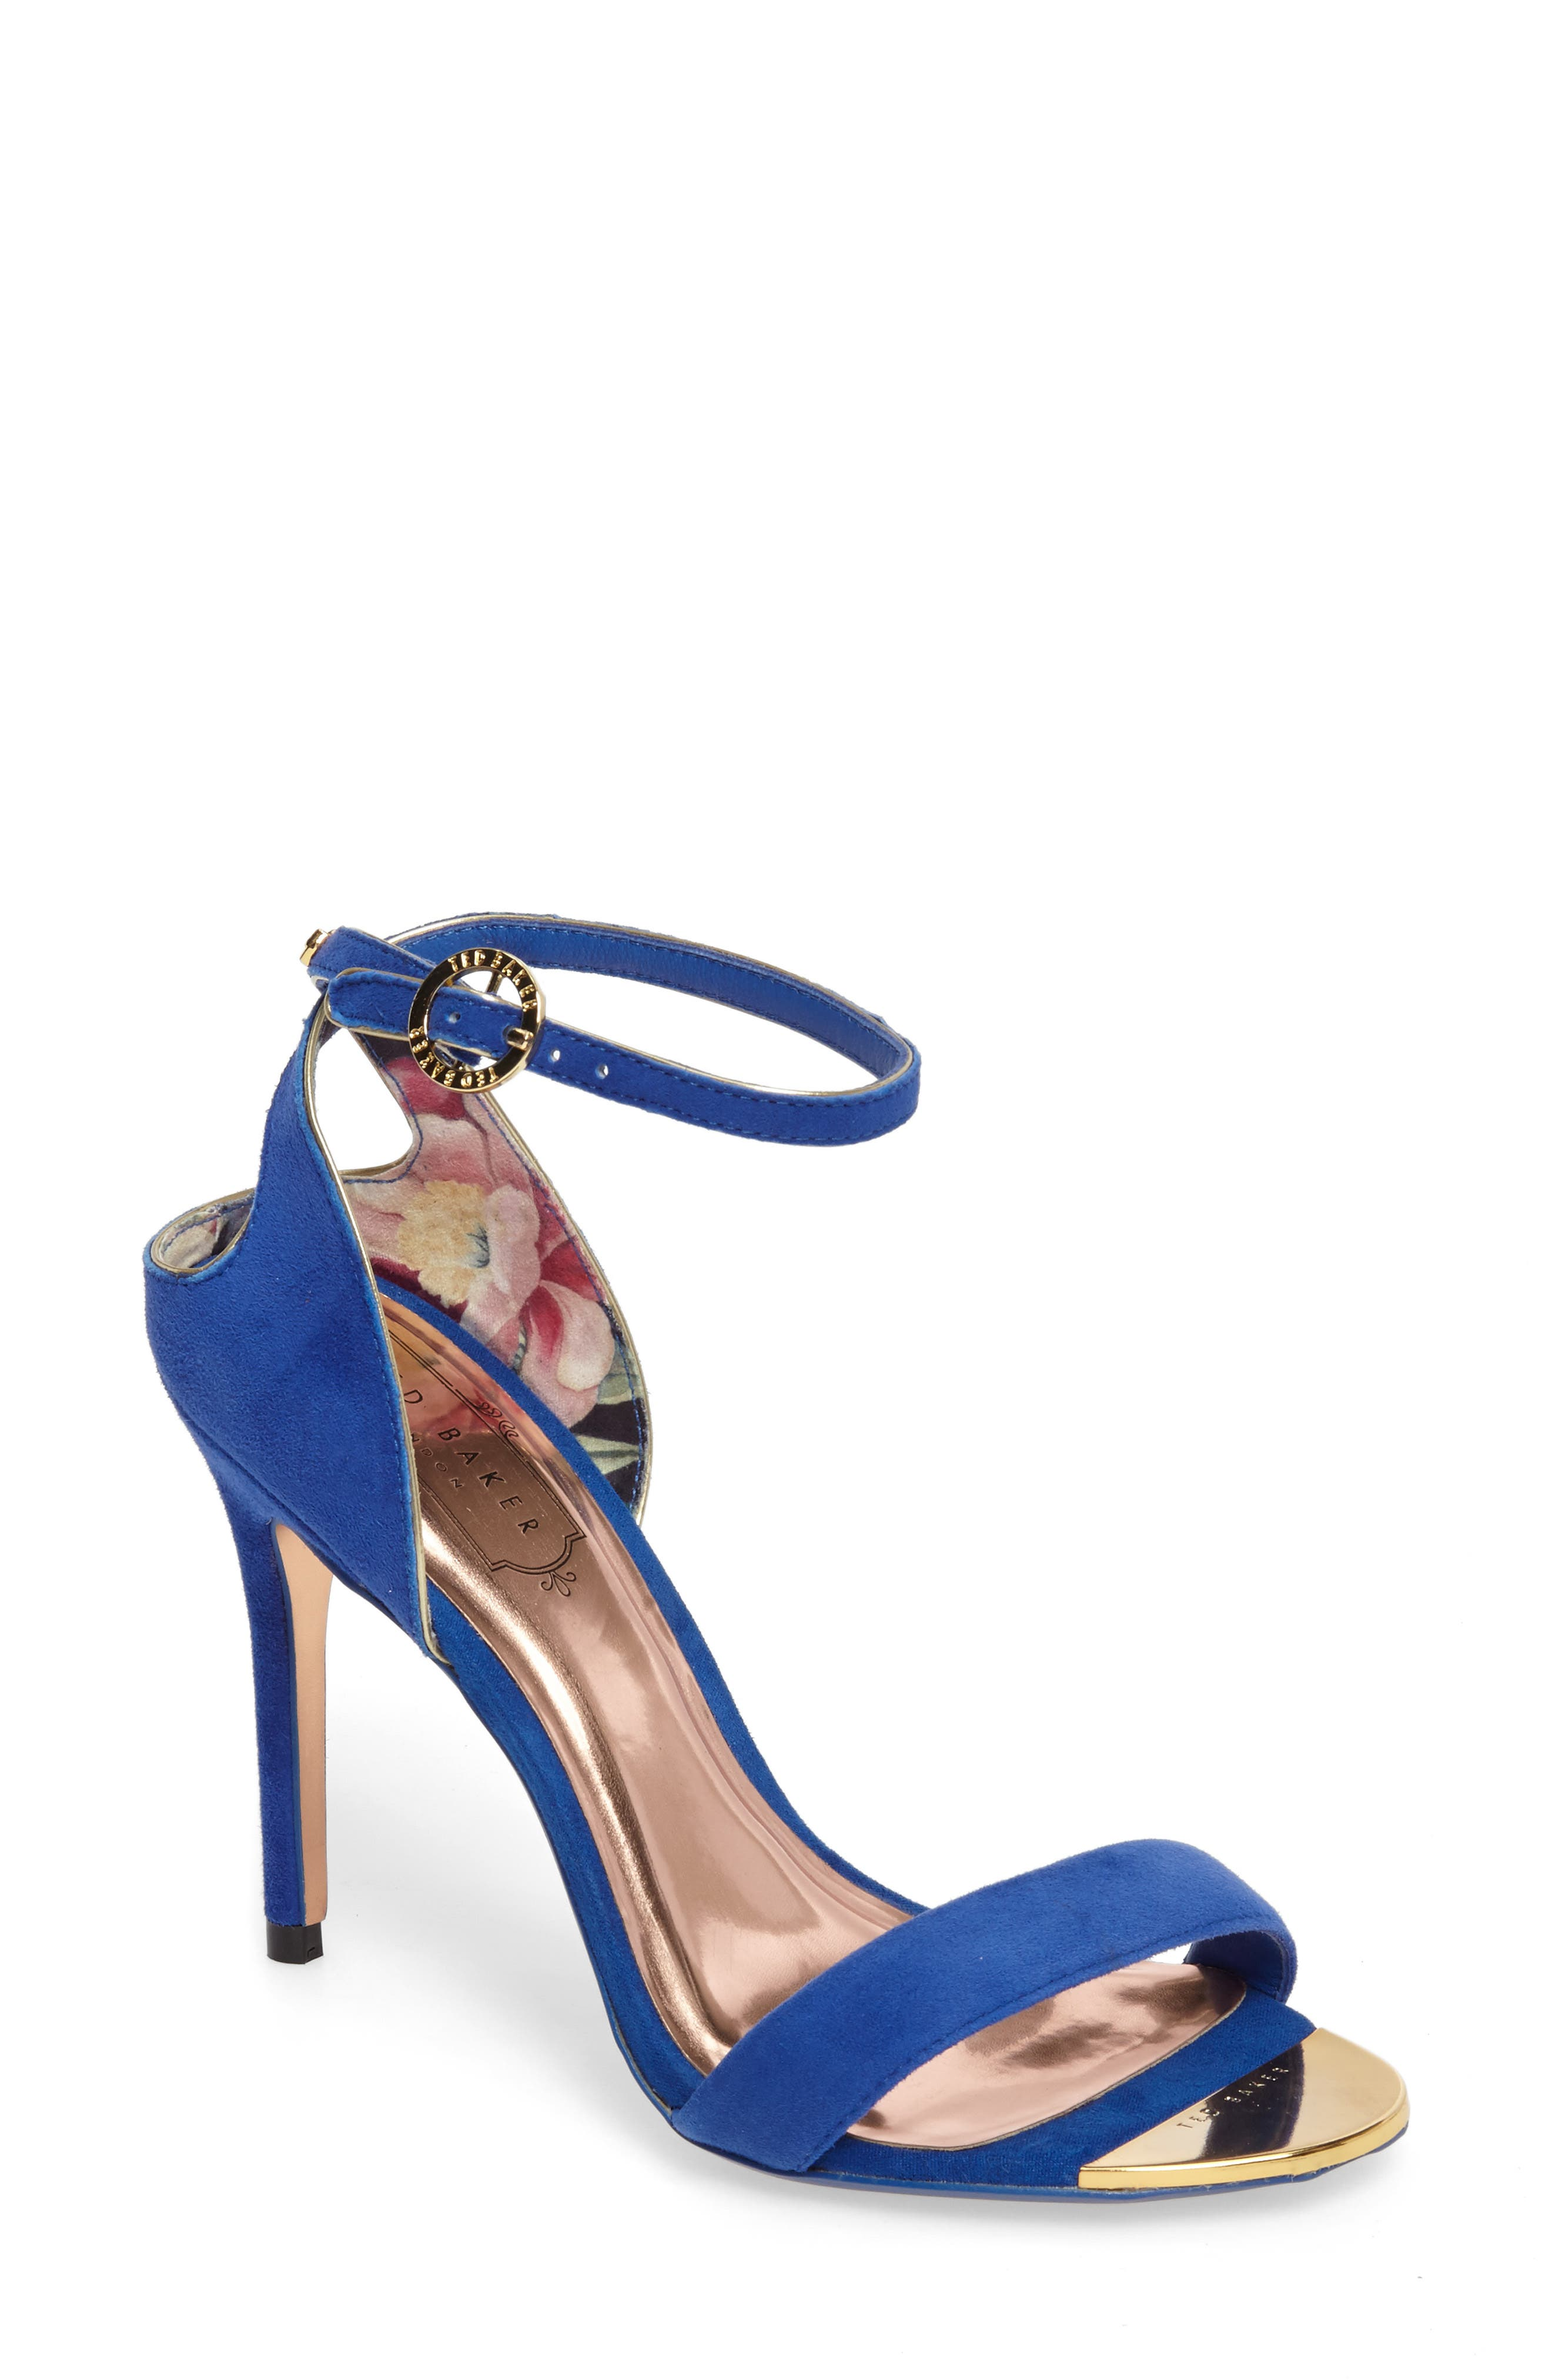 Mirobell Ankle Strap Sandal,                             Main thumbnail 1, color,                             Blue Suede